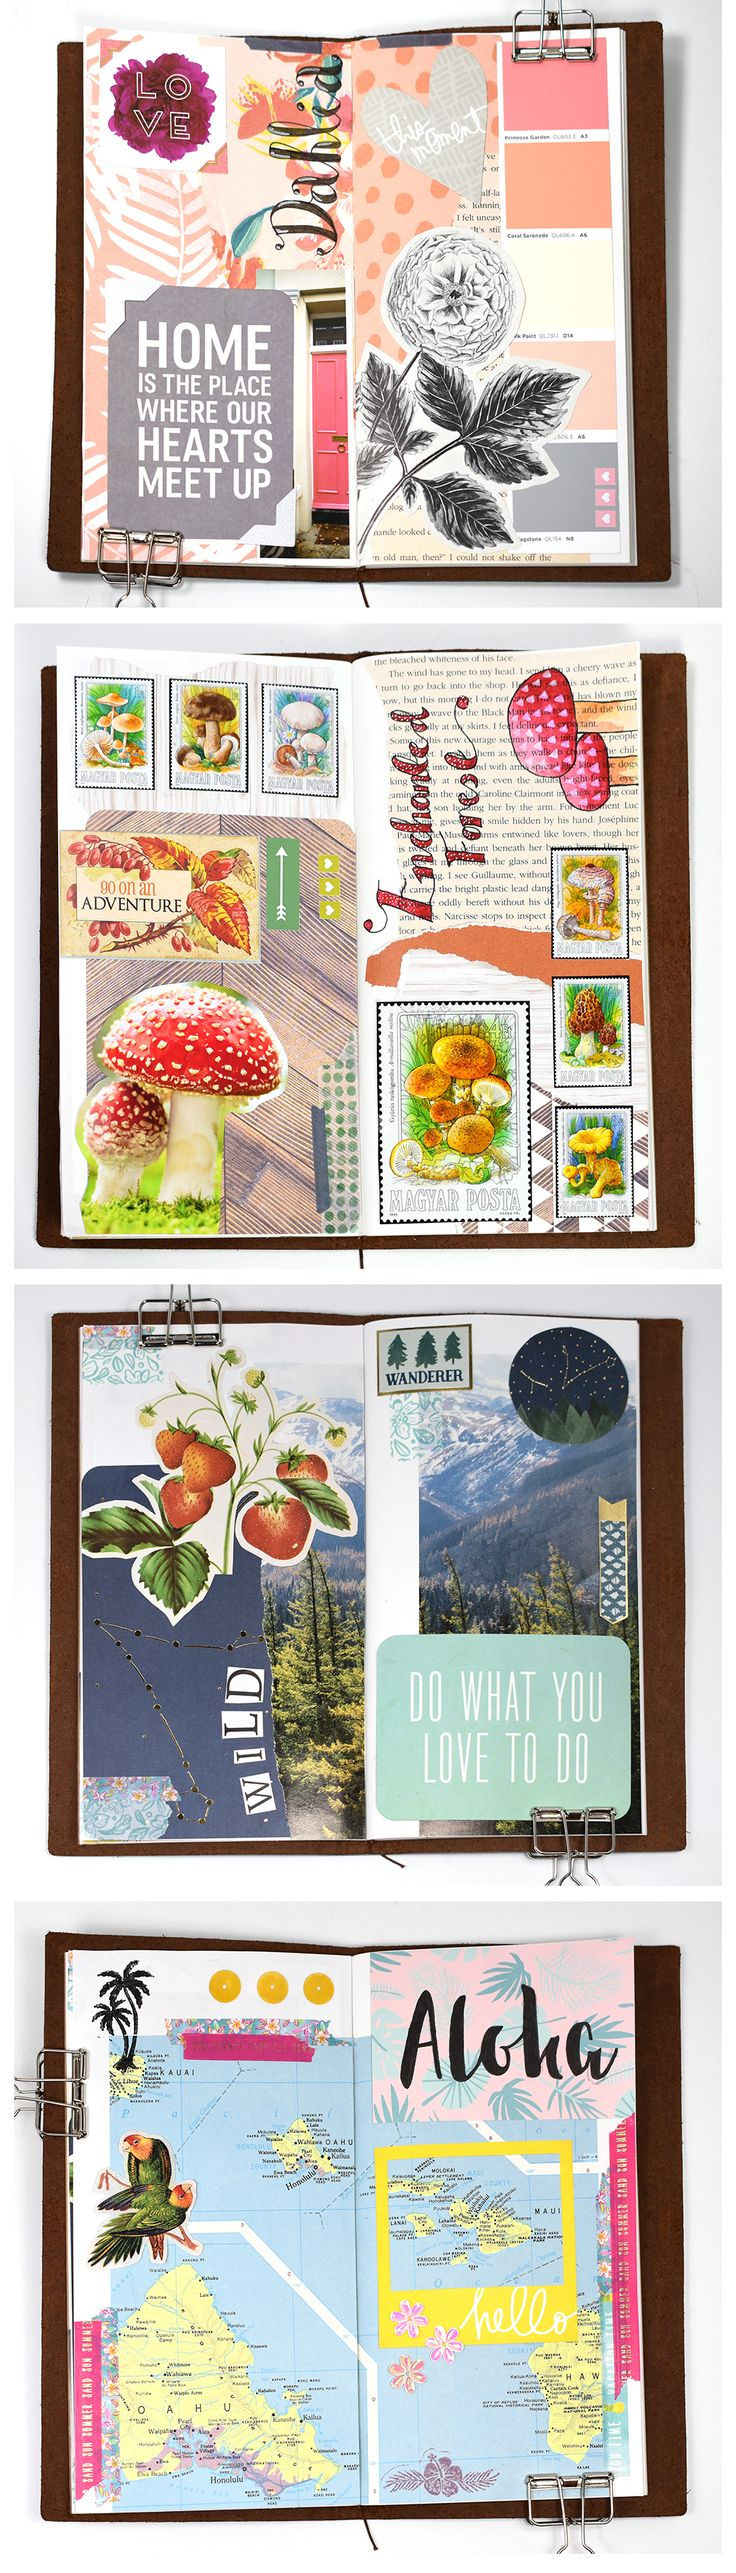 FREE Daily Scrapbooking and Art Journal Prompts - November 2017 - CreativePassport.org